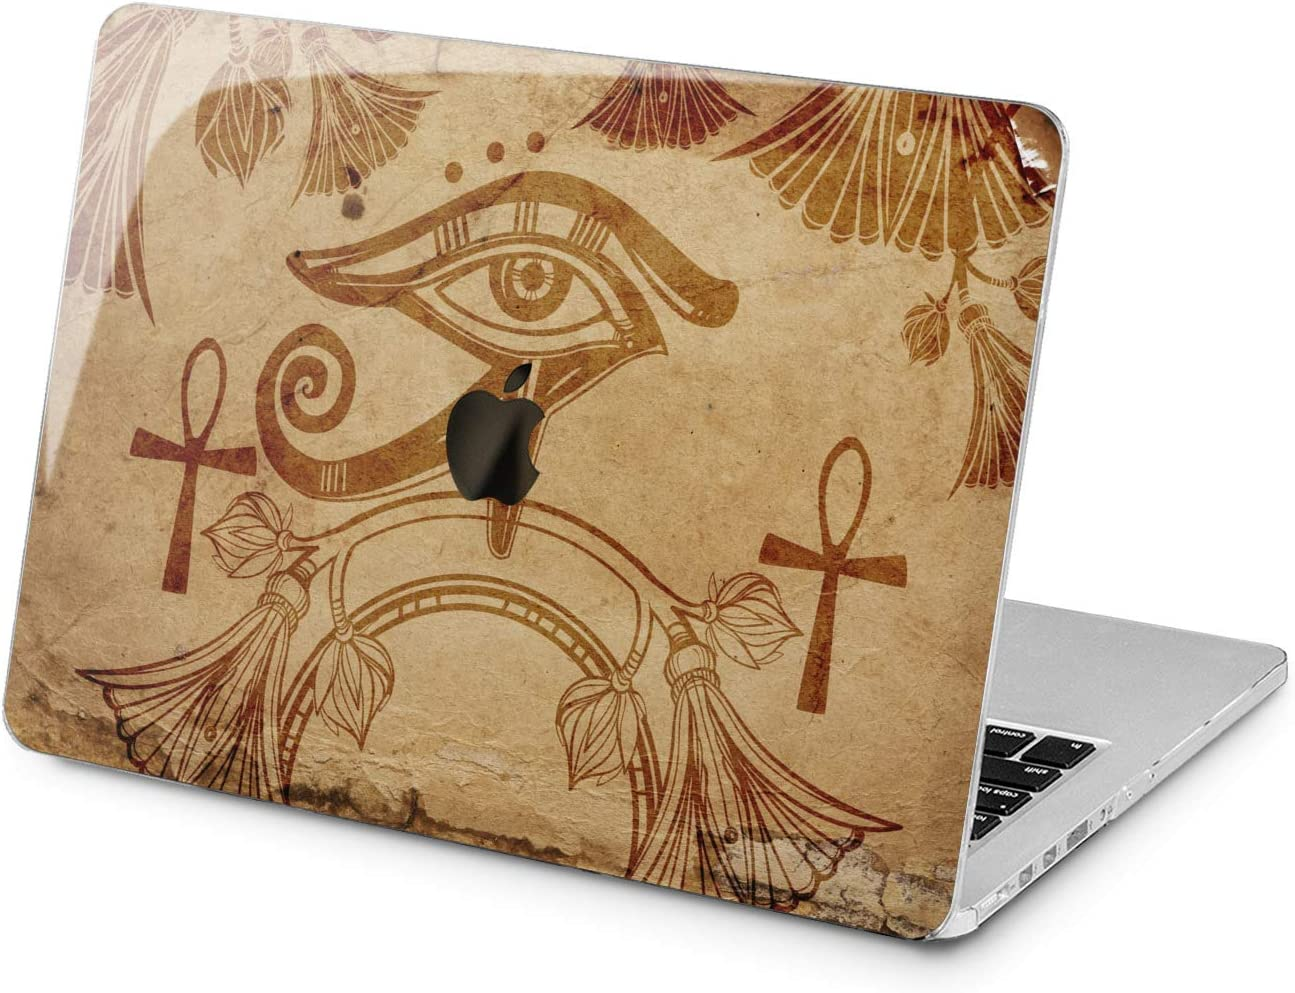 MacBook Covers Black Pottery Ancient Greek Mythology MacBook Air 11 Case Multi-Color /& Size Choices/10//12//13//15//17 Inch Computer Tablet Briefcase Carrying Bag